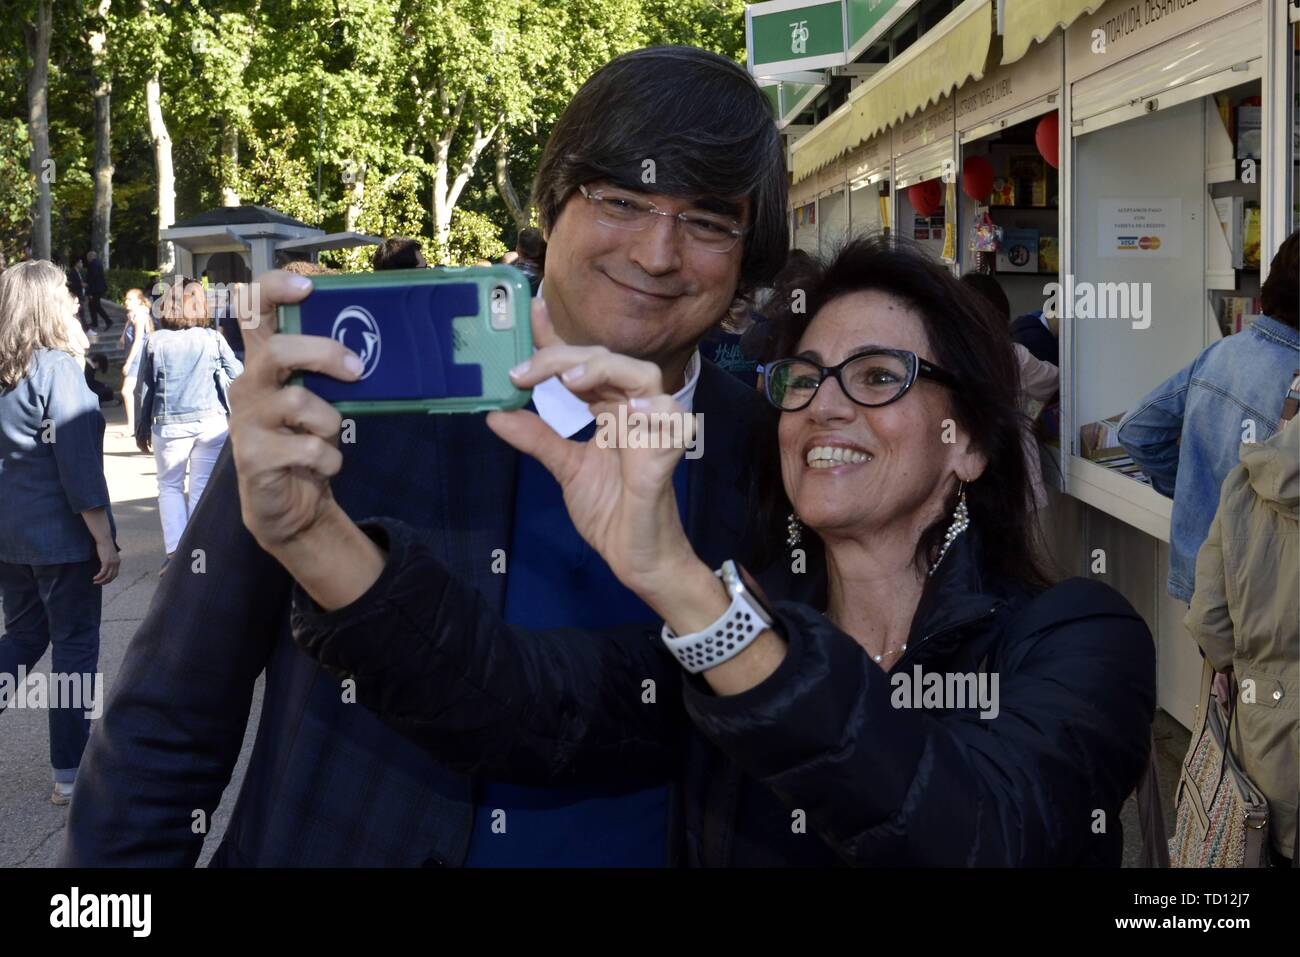 Madrid Spain 11th June 2019 The Writer Jaime Bayly During The Book Fair In Madrid Tuesday June 11 2019 Credit Cordon Press Alamy Live News Stock Photo Alamy La mujer de mi hermano. alamy